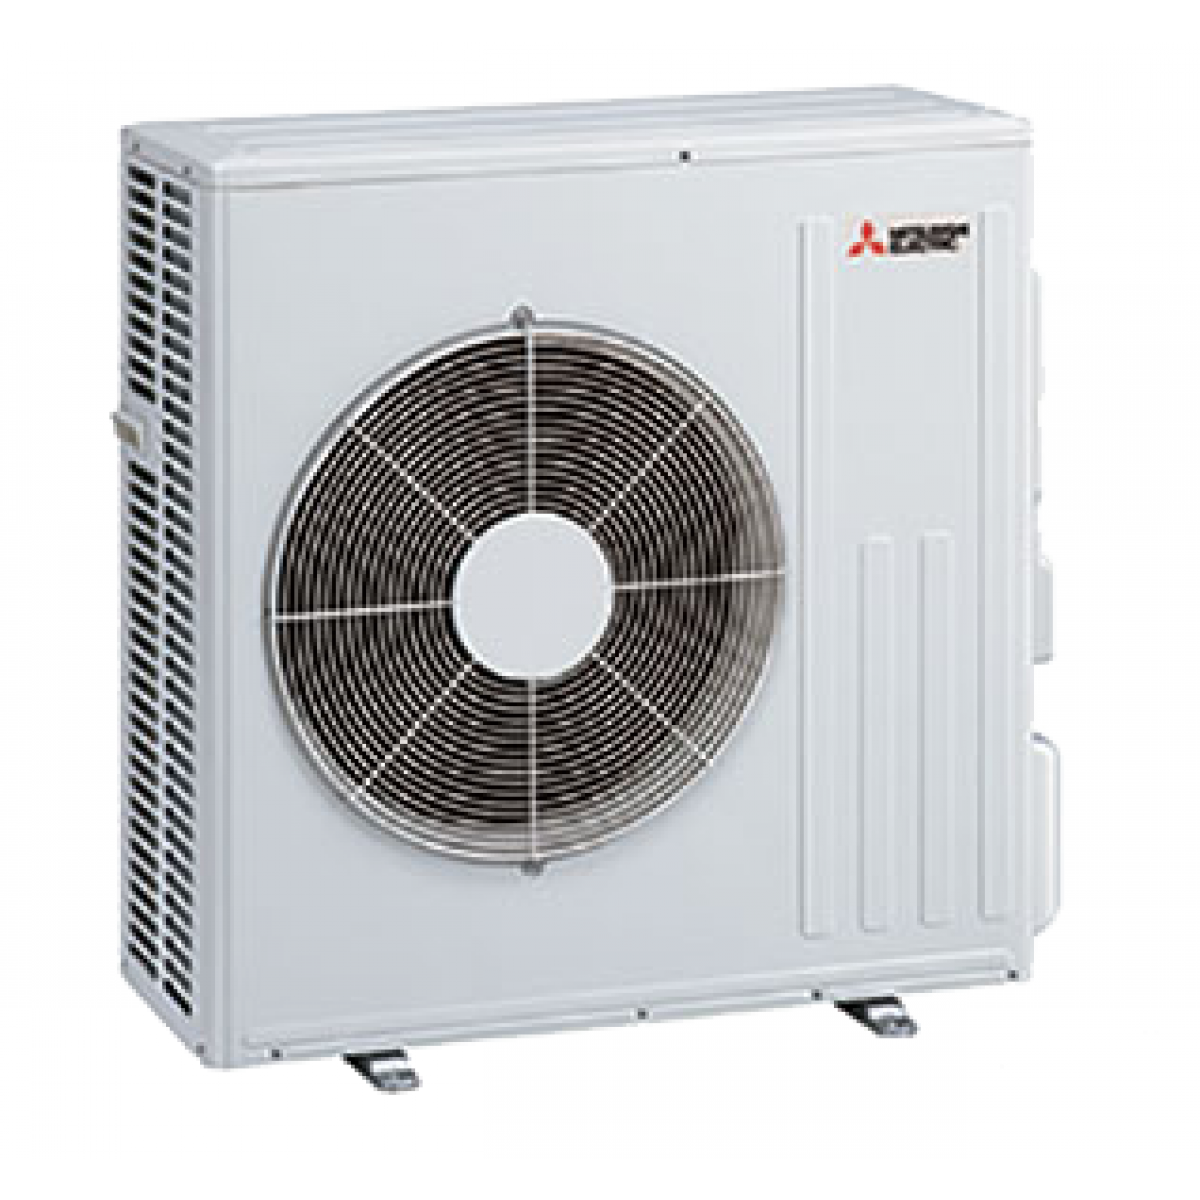 #745B57 24K BTU Mitsubishi MUZGL Heat Pump Outdoor Unit In  Recommended 5397 Mitsubishi Heat Pump Parts pics with 1200x1200 px on helpvideos.info - Air Conditioners, Air Coolers and more